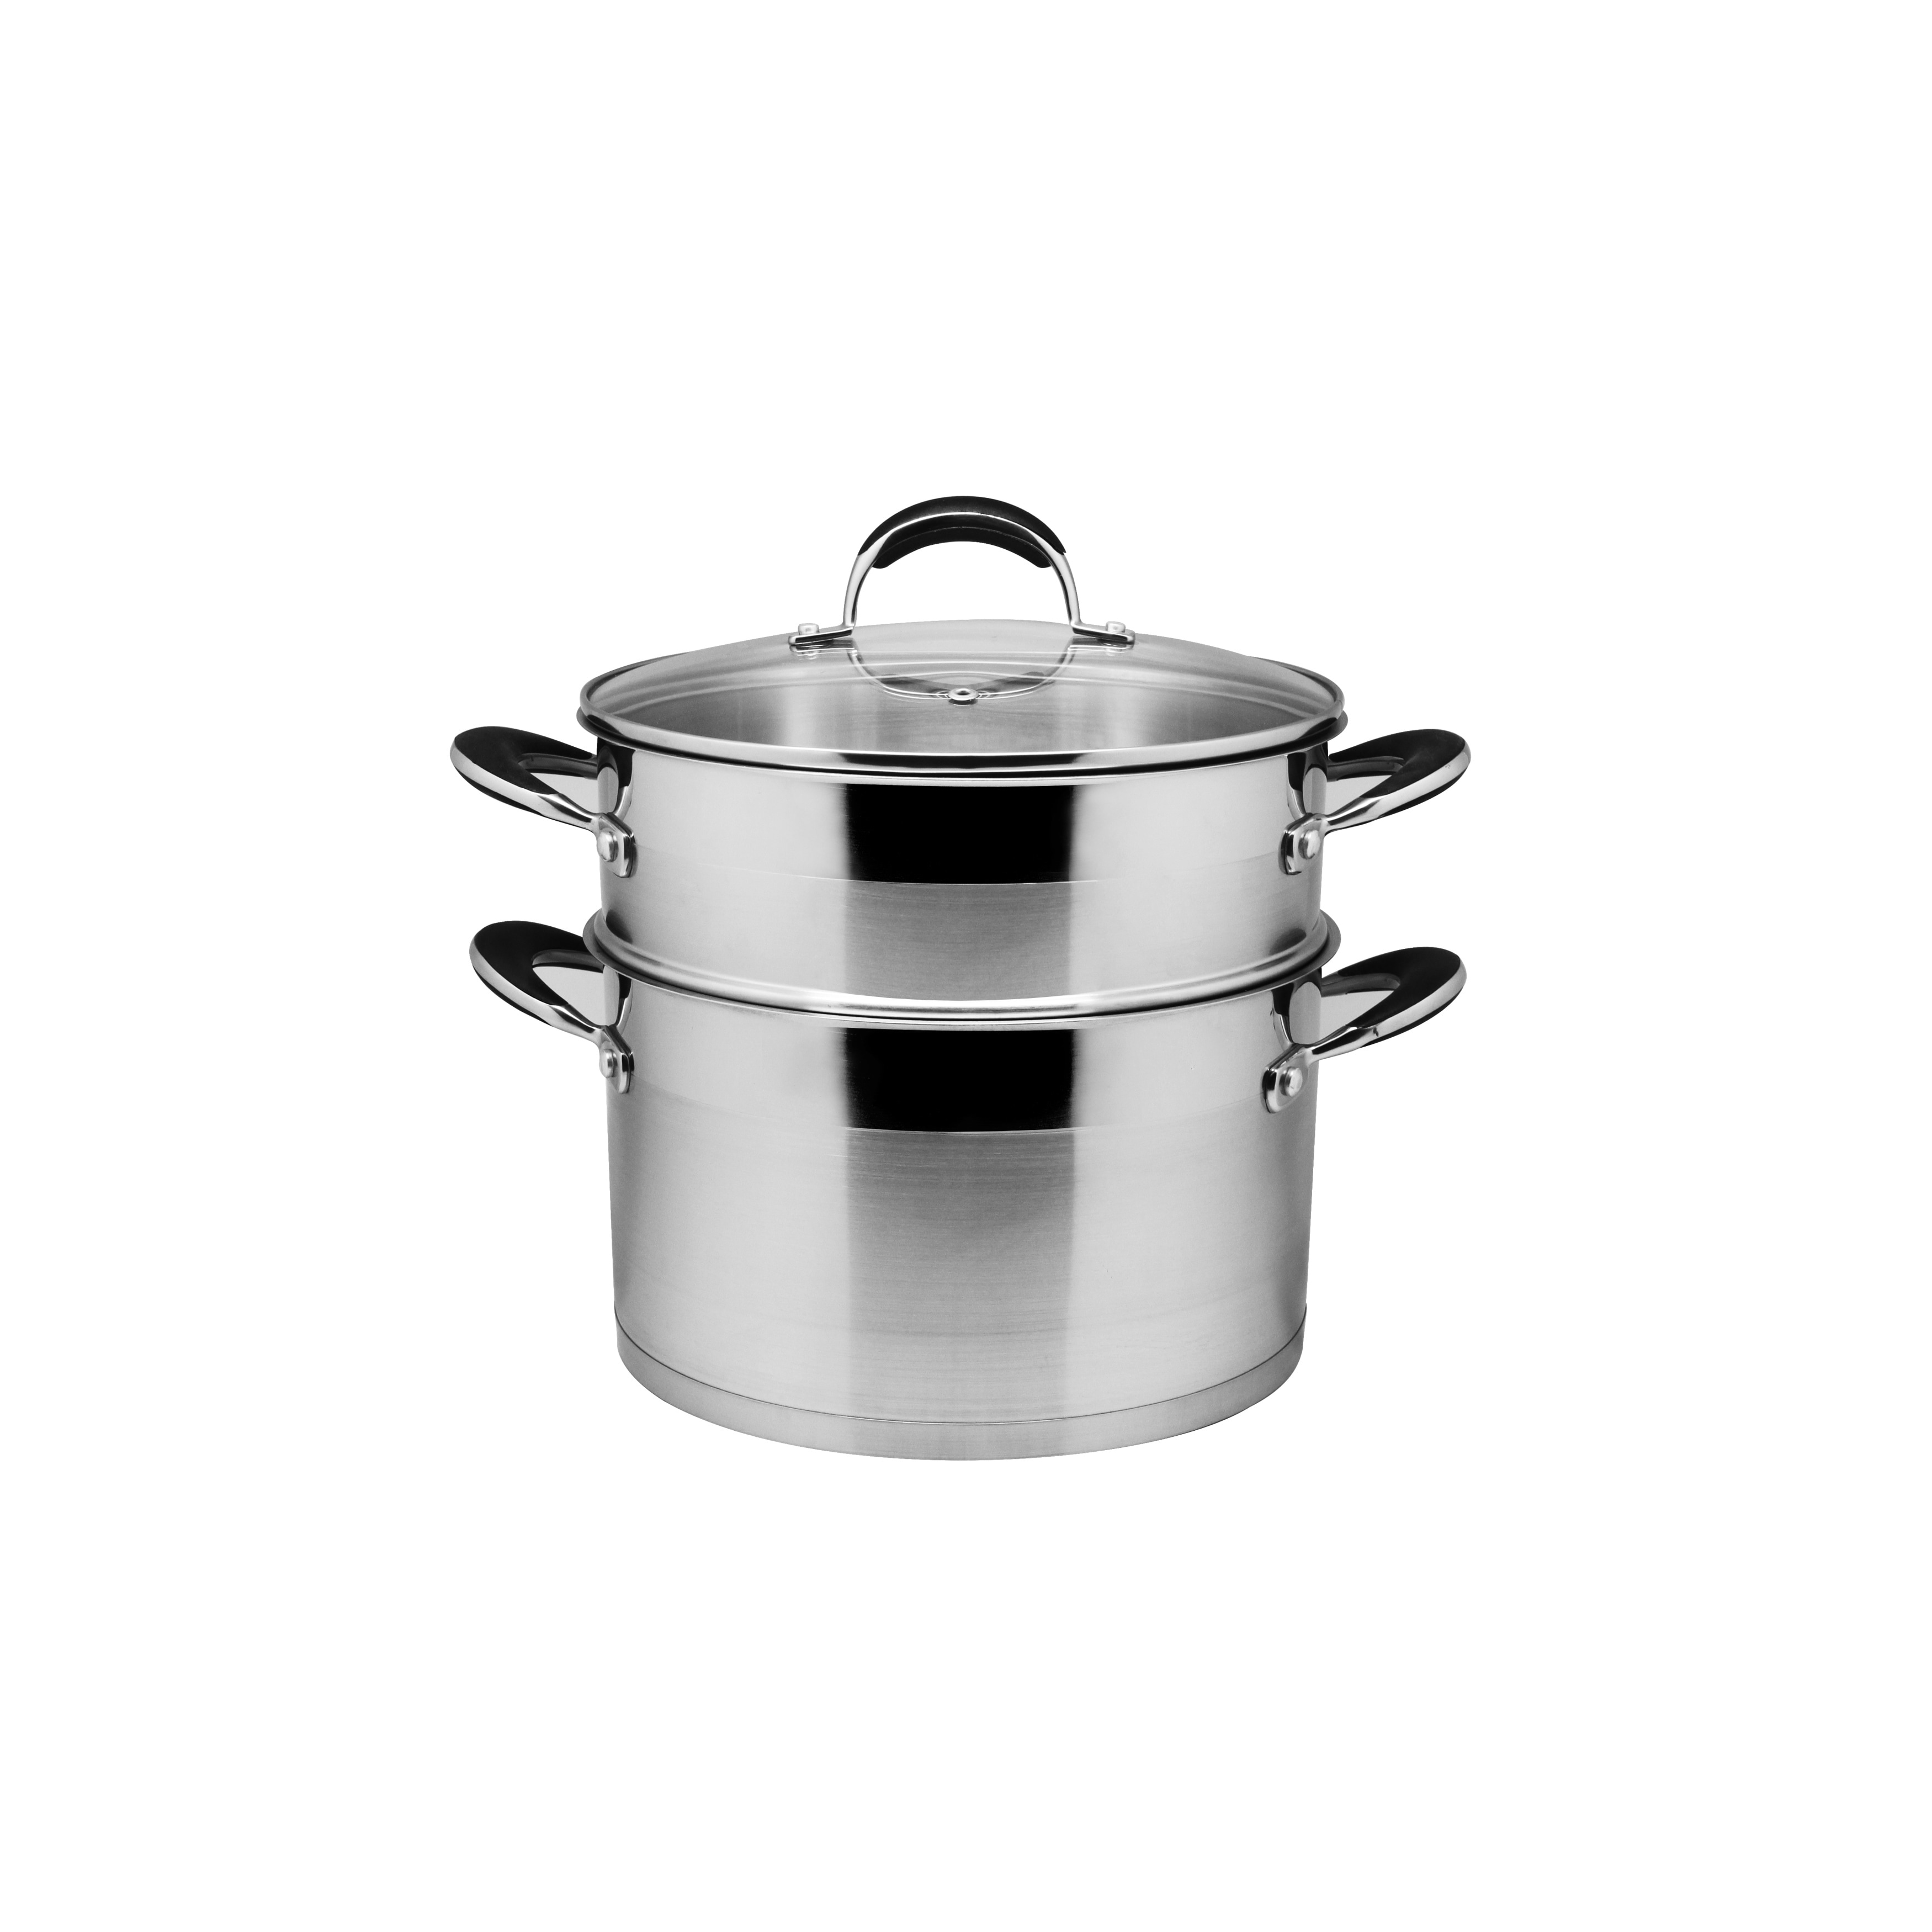 Steamer Saucepan Prime Cook Stainless Steel 8 Quart Stock Pot And Steamer Set With Glass Lid